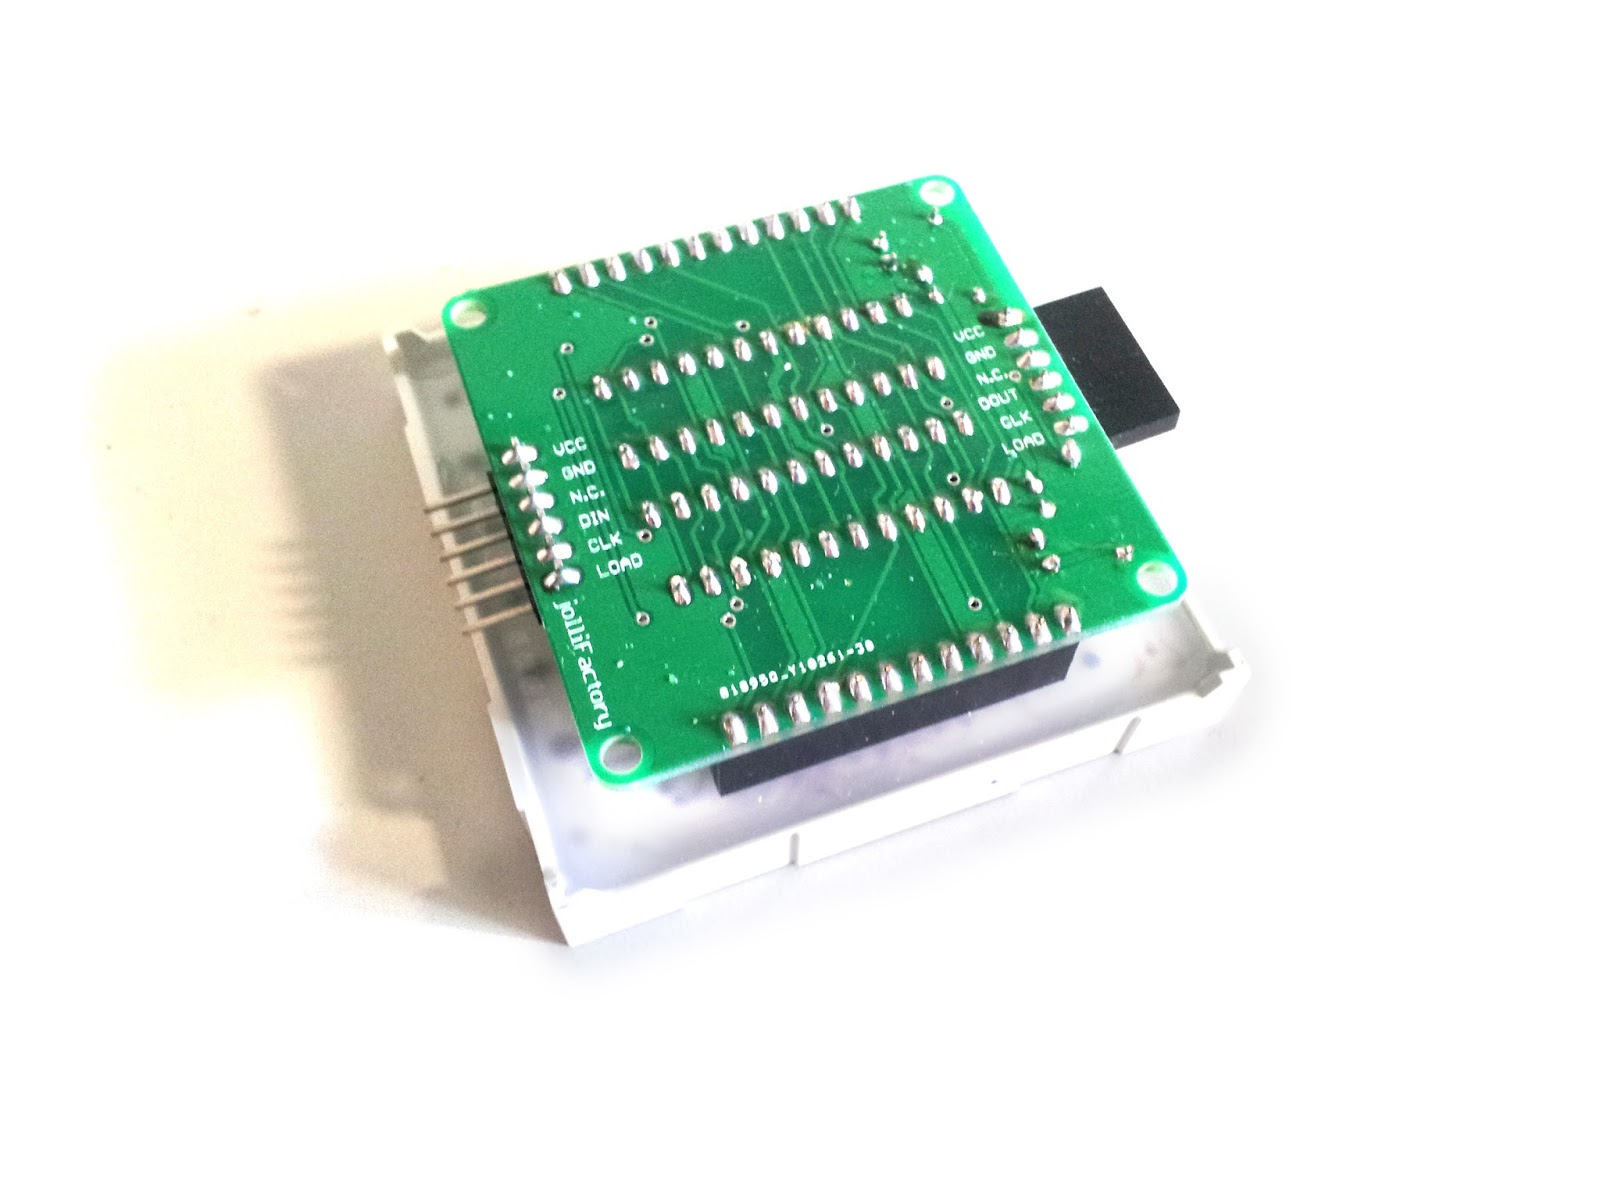 Jollifactory Bi Color Led Matrix Driver Module Diy Kit Display Circuit Parts List Note Item 3 Is Needed But Not Included In The